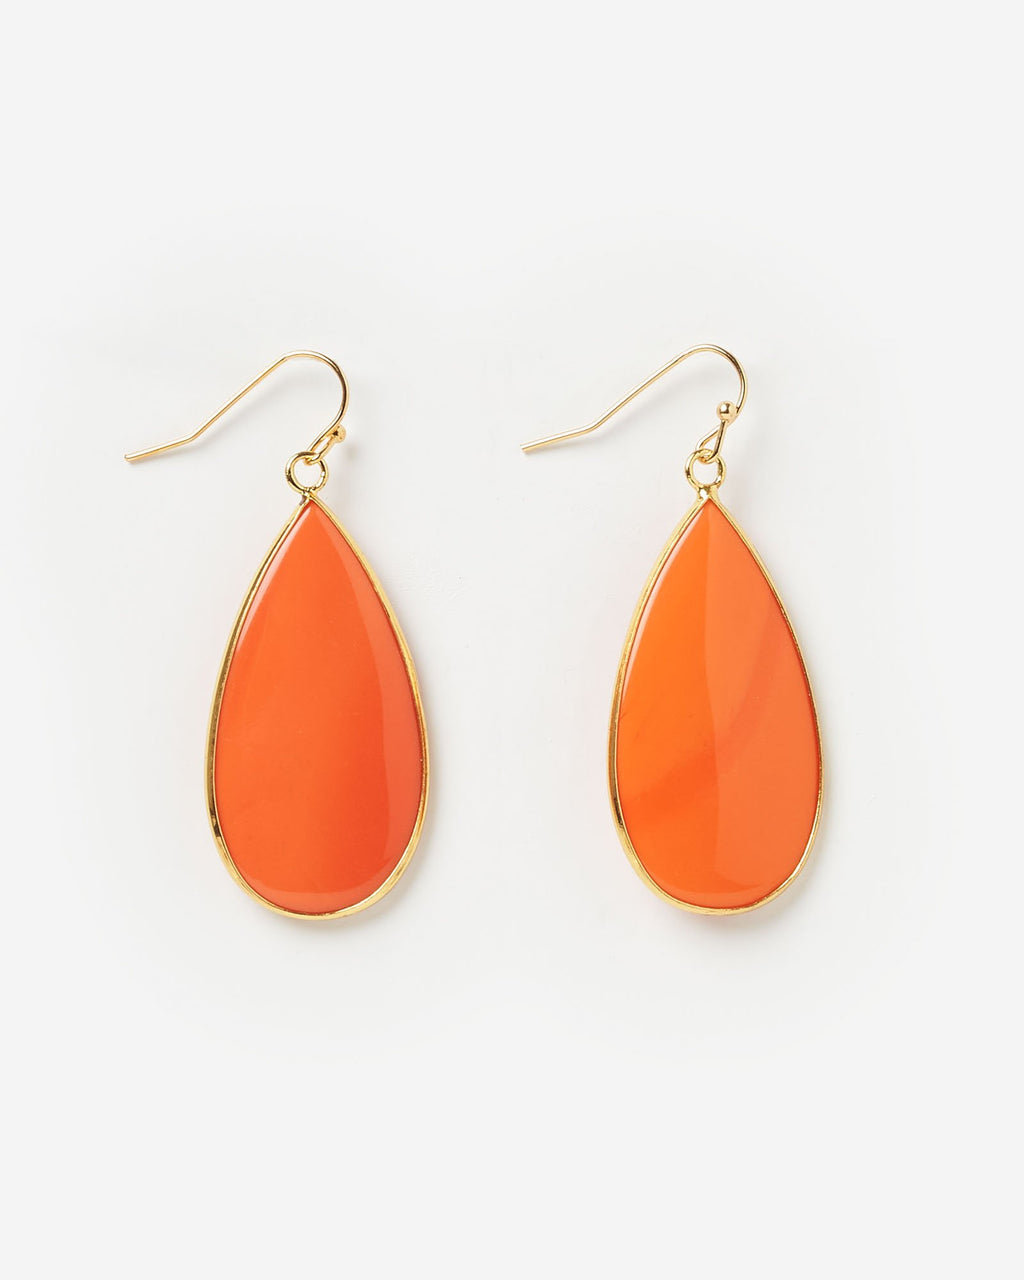 Miz Casa & Co Sea Petal Earrings Orange Gold